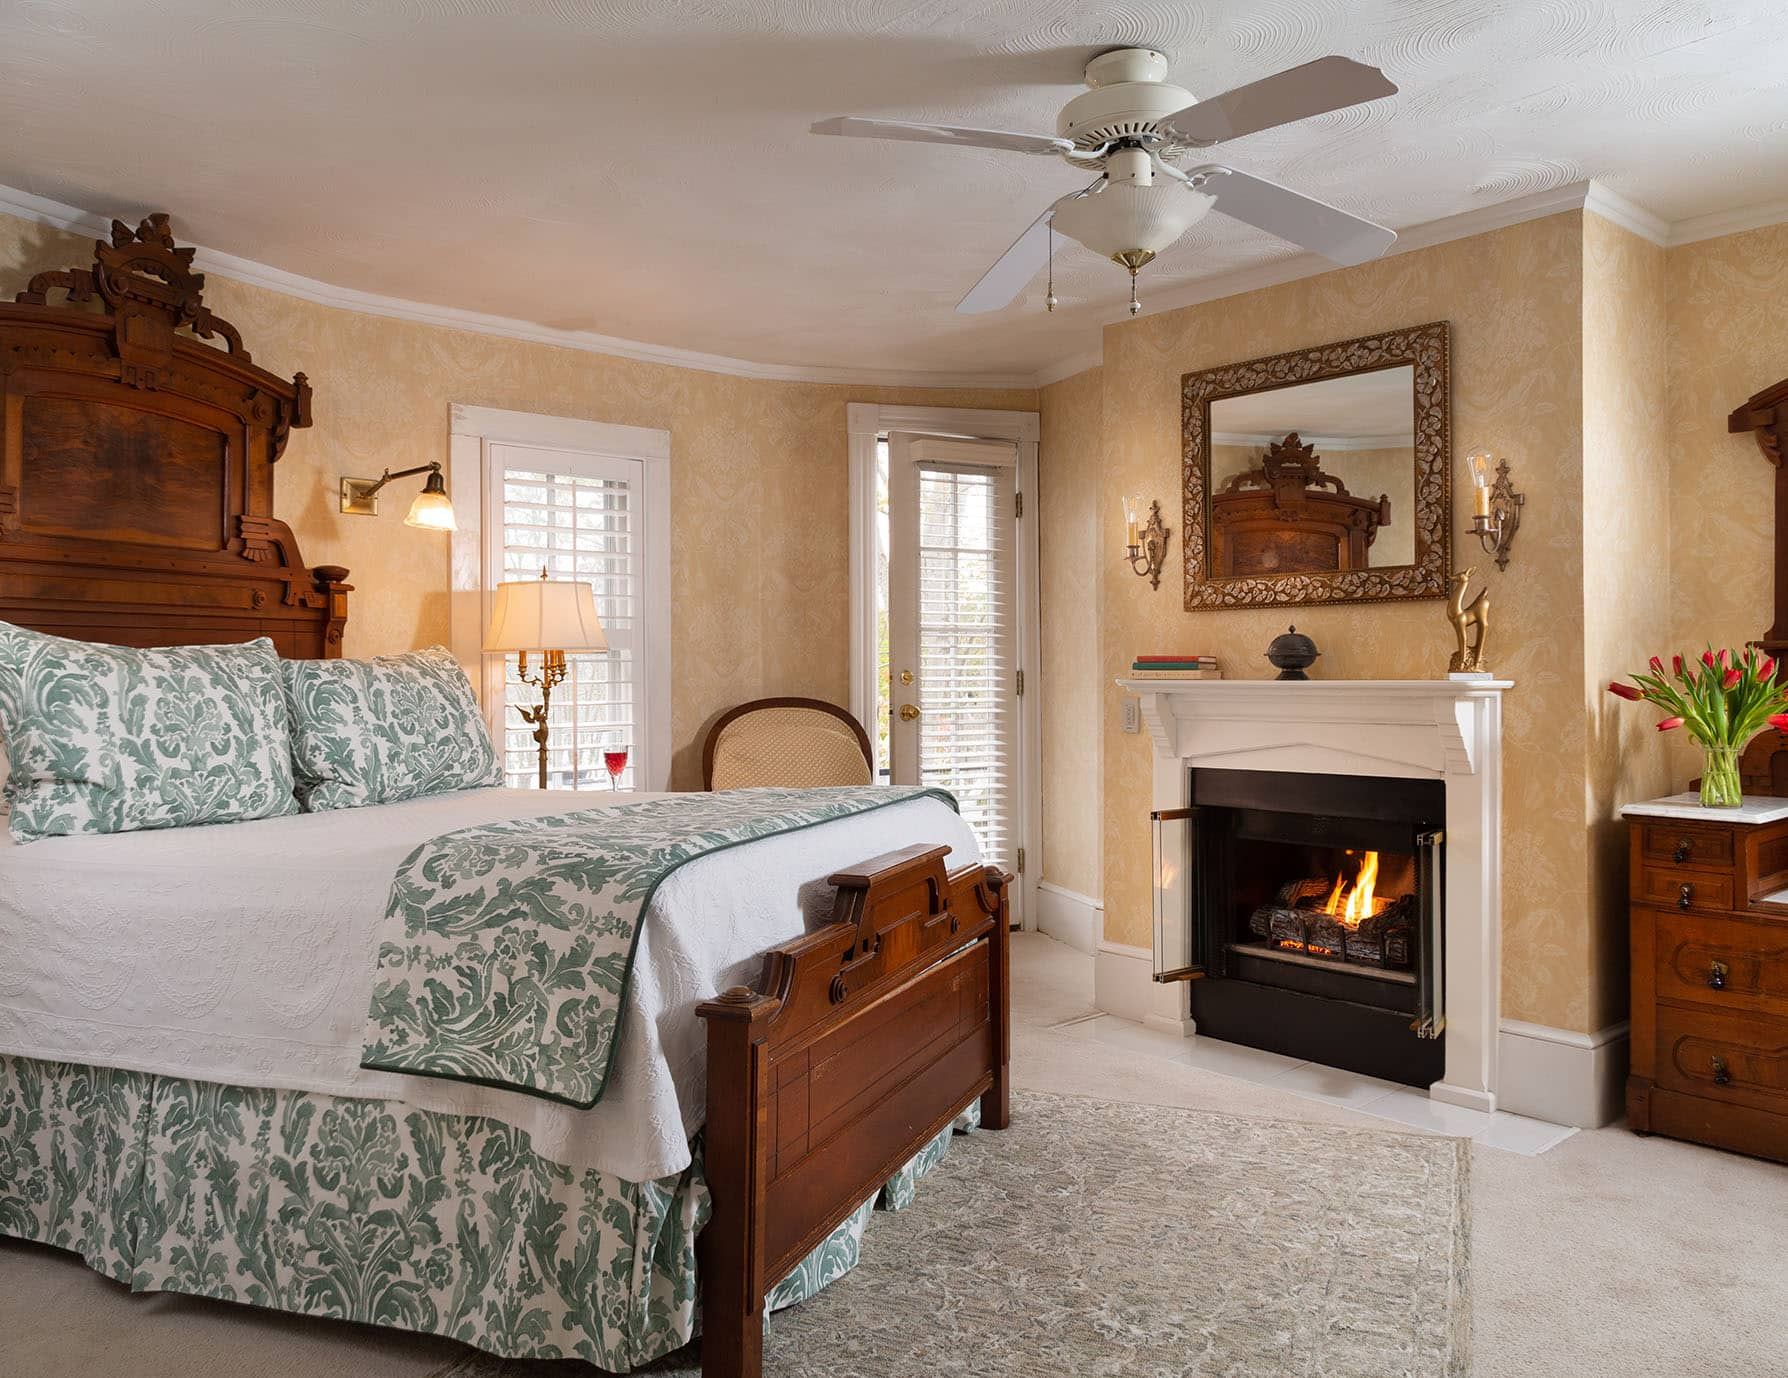 Roanoke Island Bed and Breakfast Spacious Queen Room with Fireplace